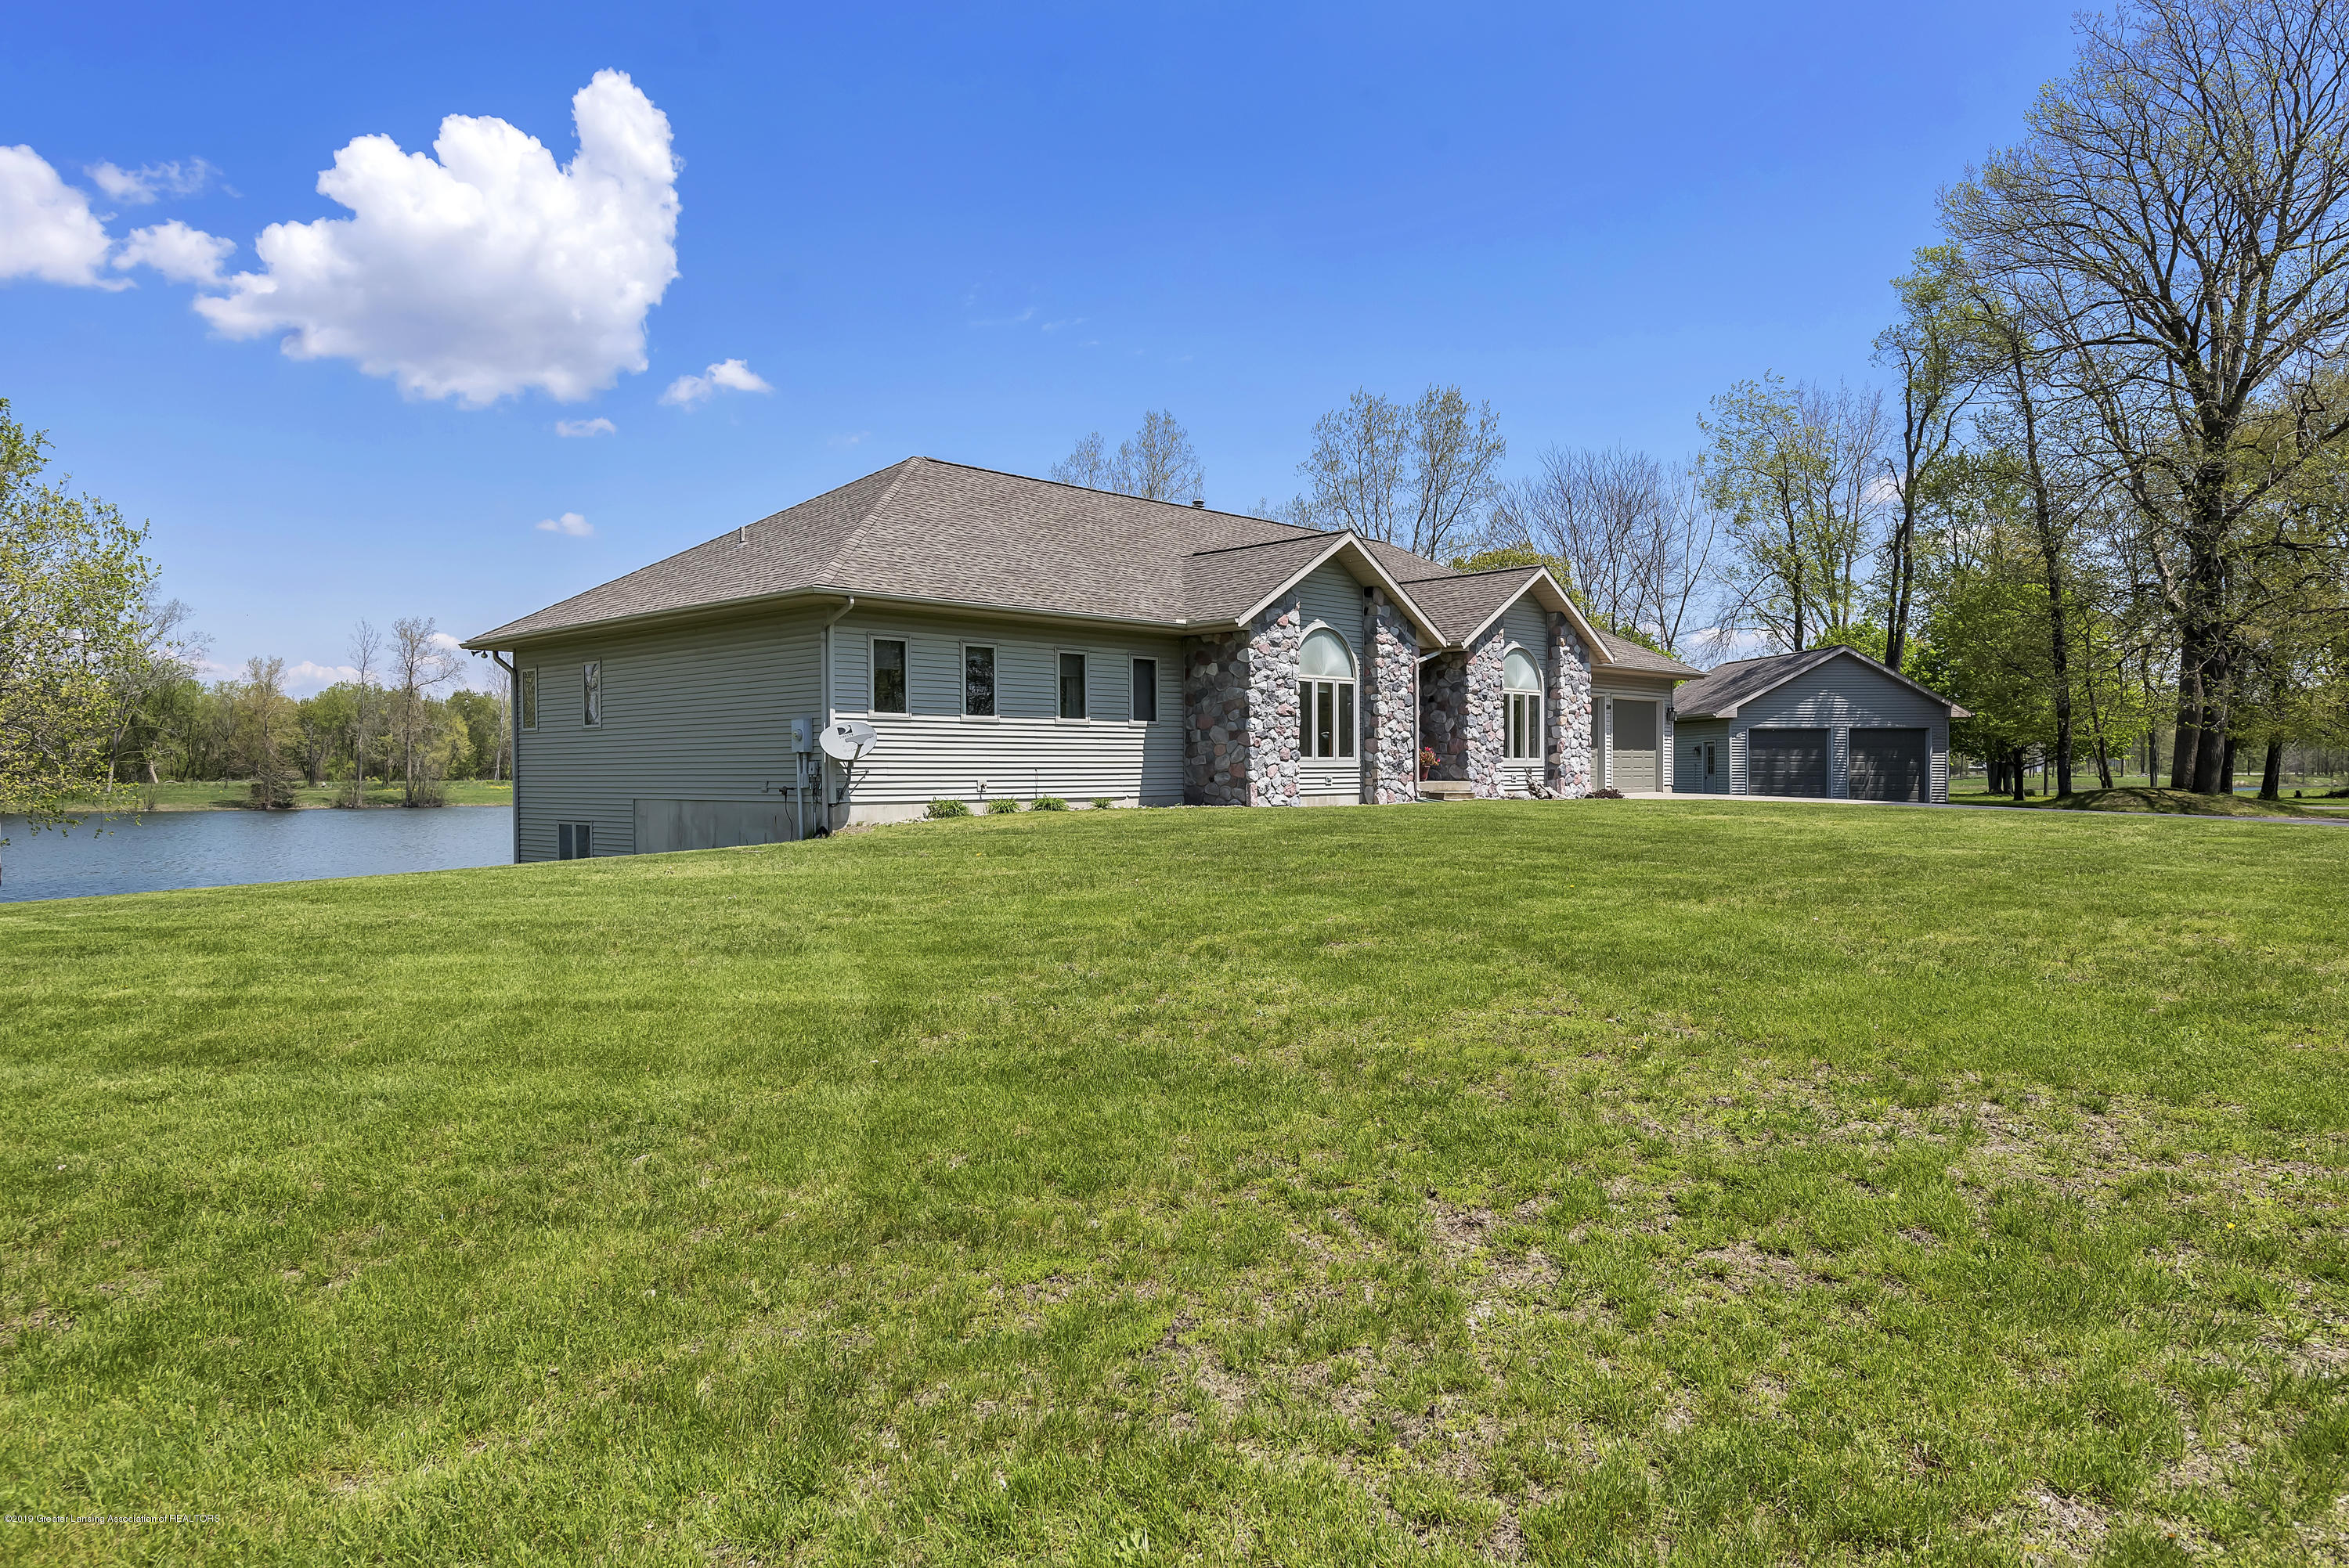 8558 Ironstone - Front View - 38